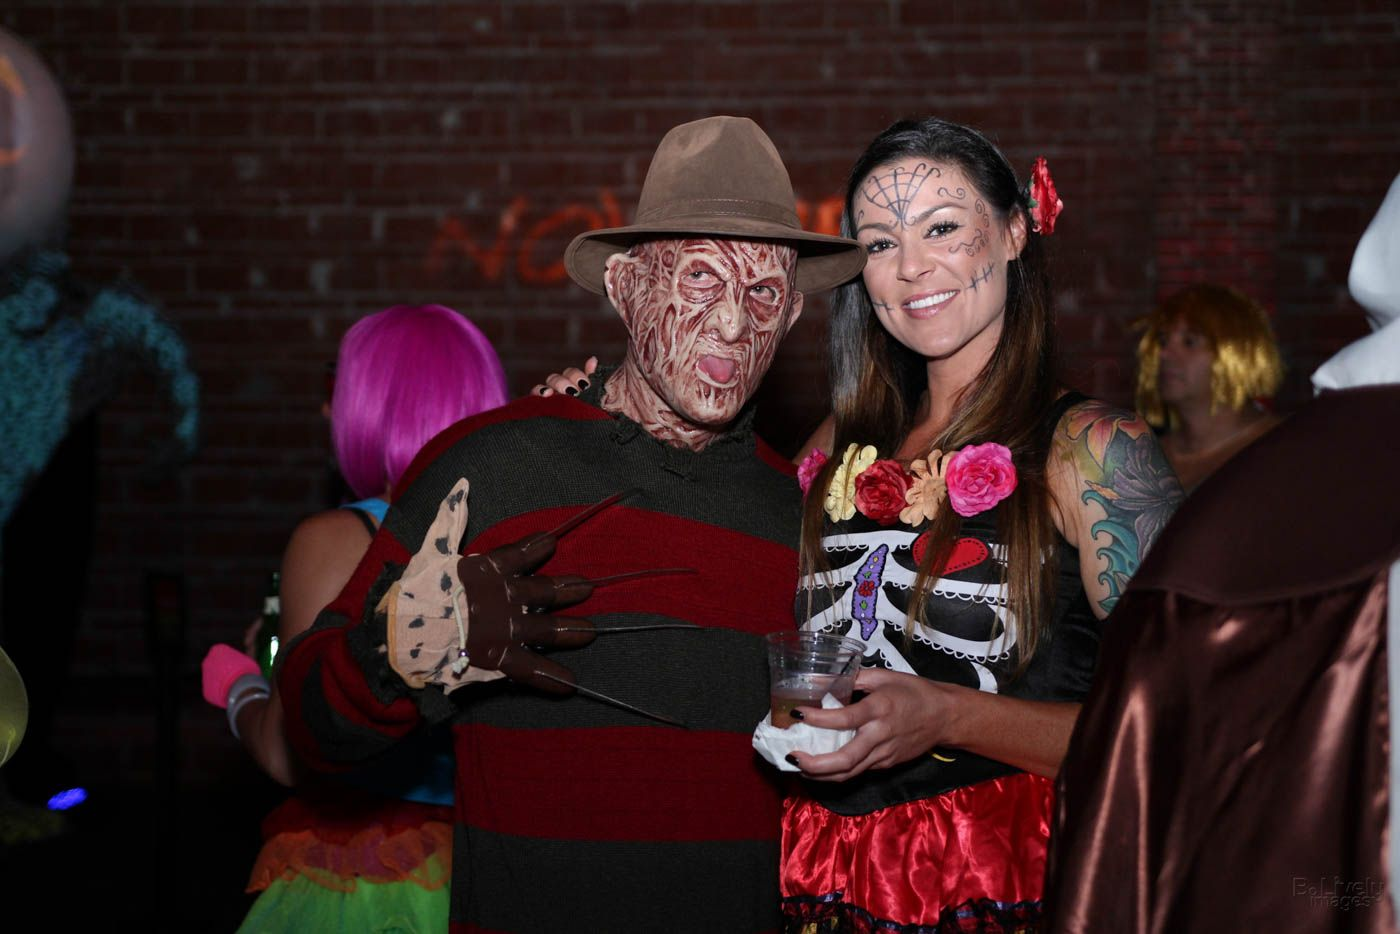 2016-10-21-novaween-10-at-nova-535-in-dtsp_blivelyimages_party-photos-28